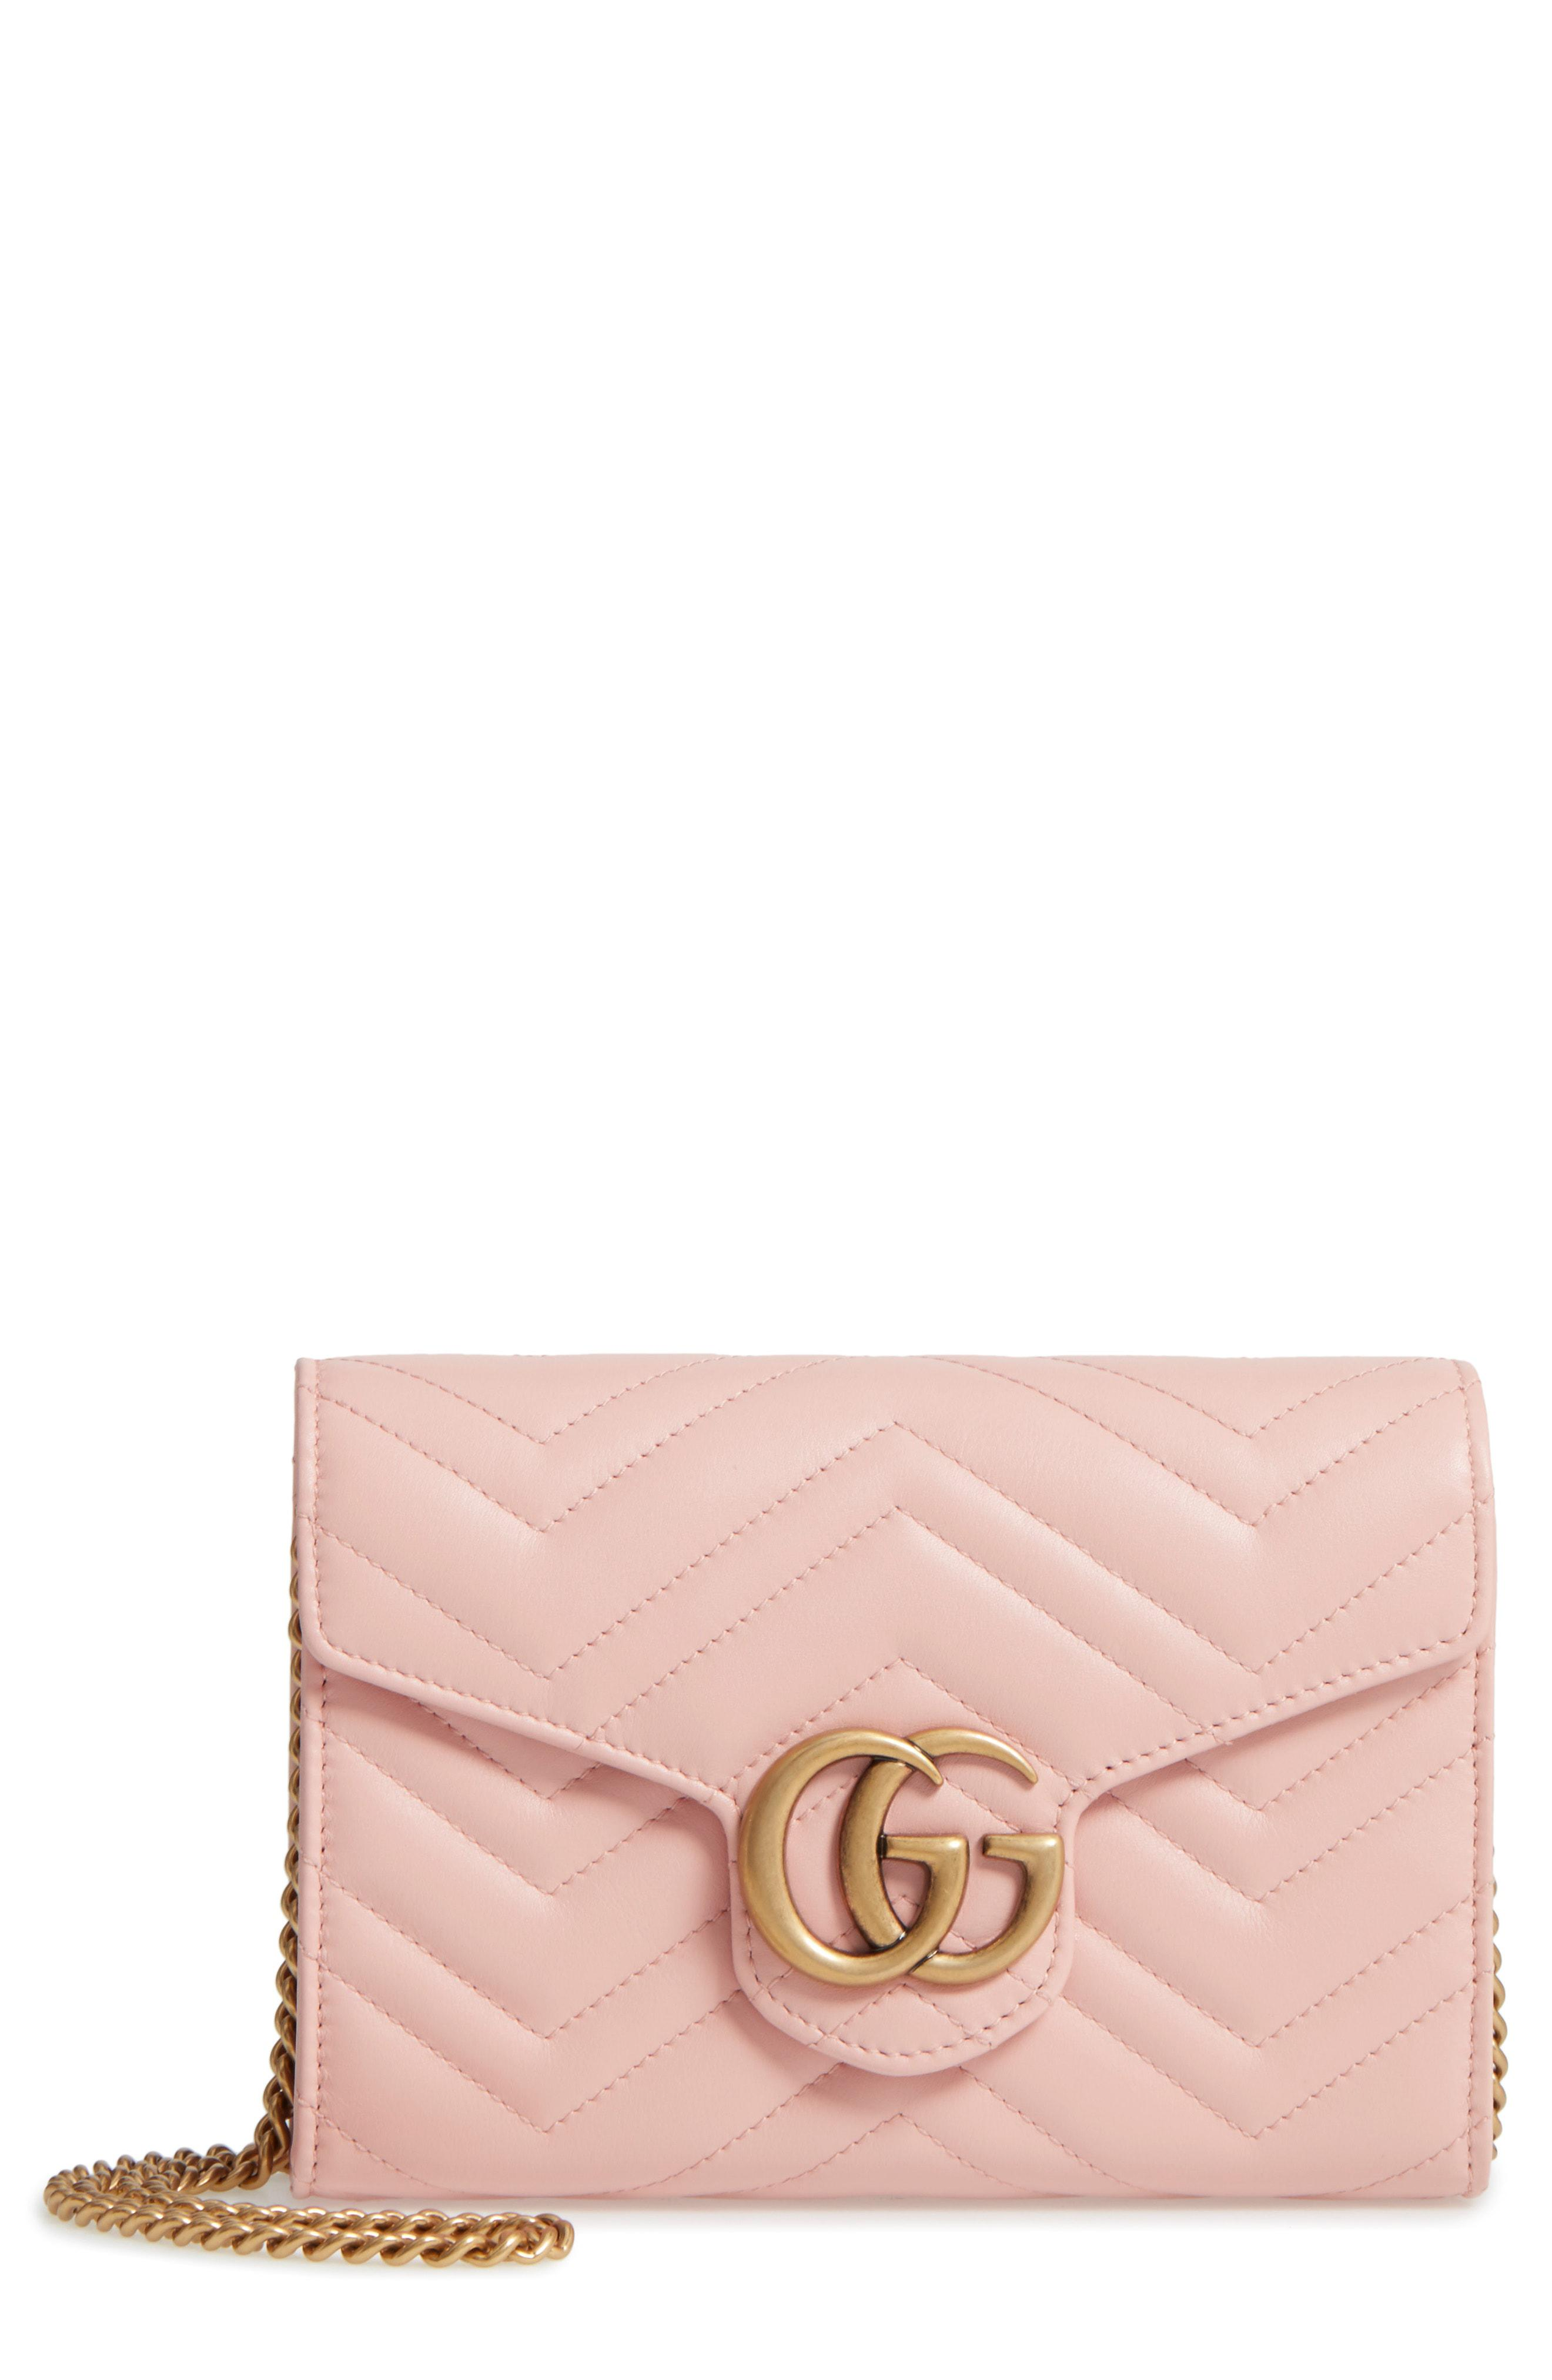 75de880c79c Lyst - Gucci Gg Marmont Matelasse Leather Wallet On A Chain in Pink